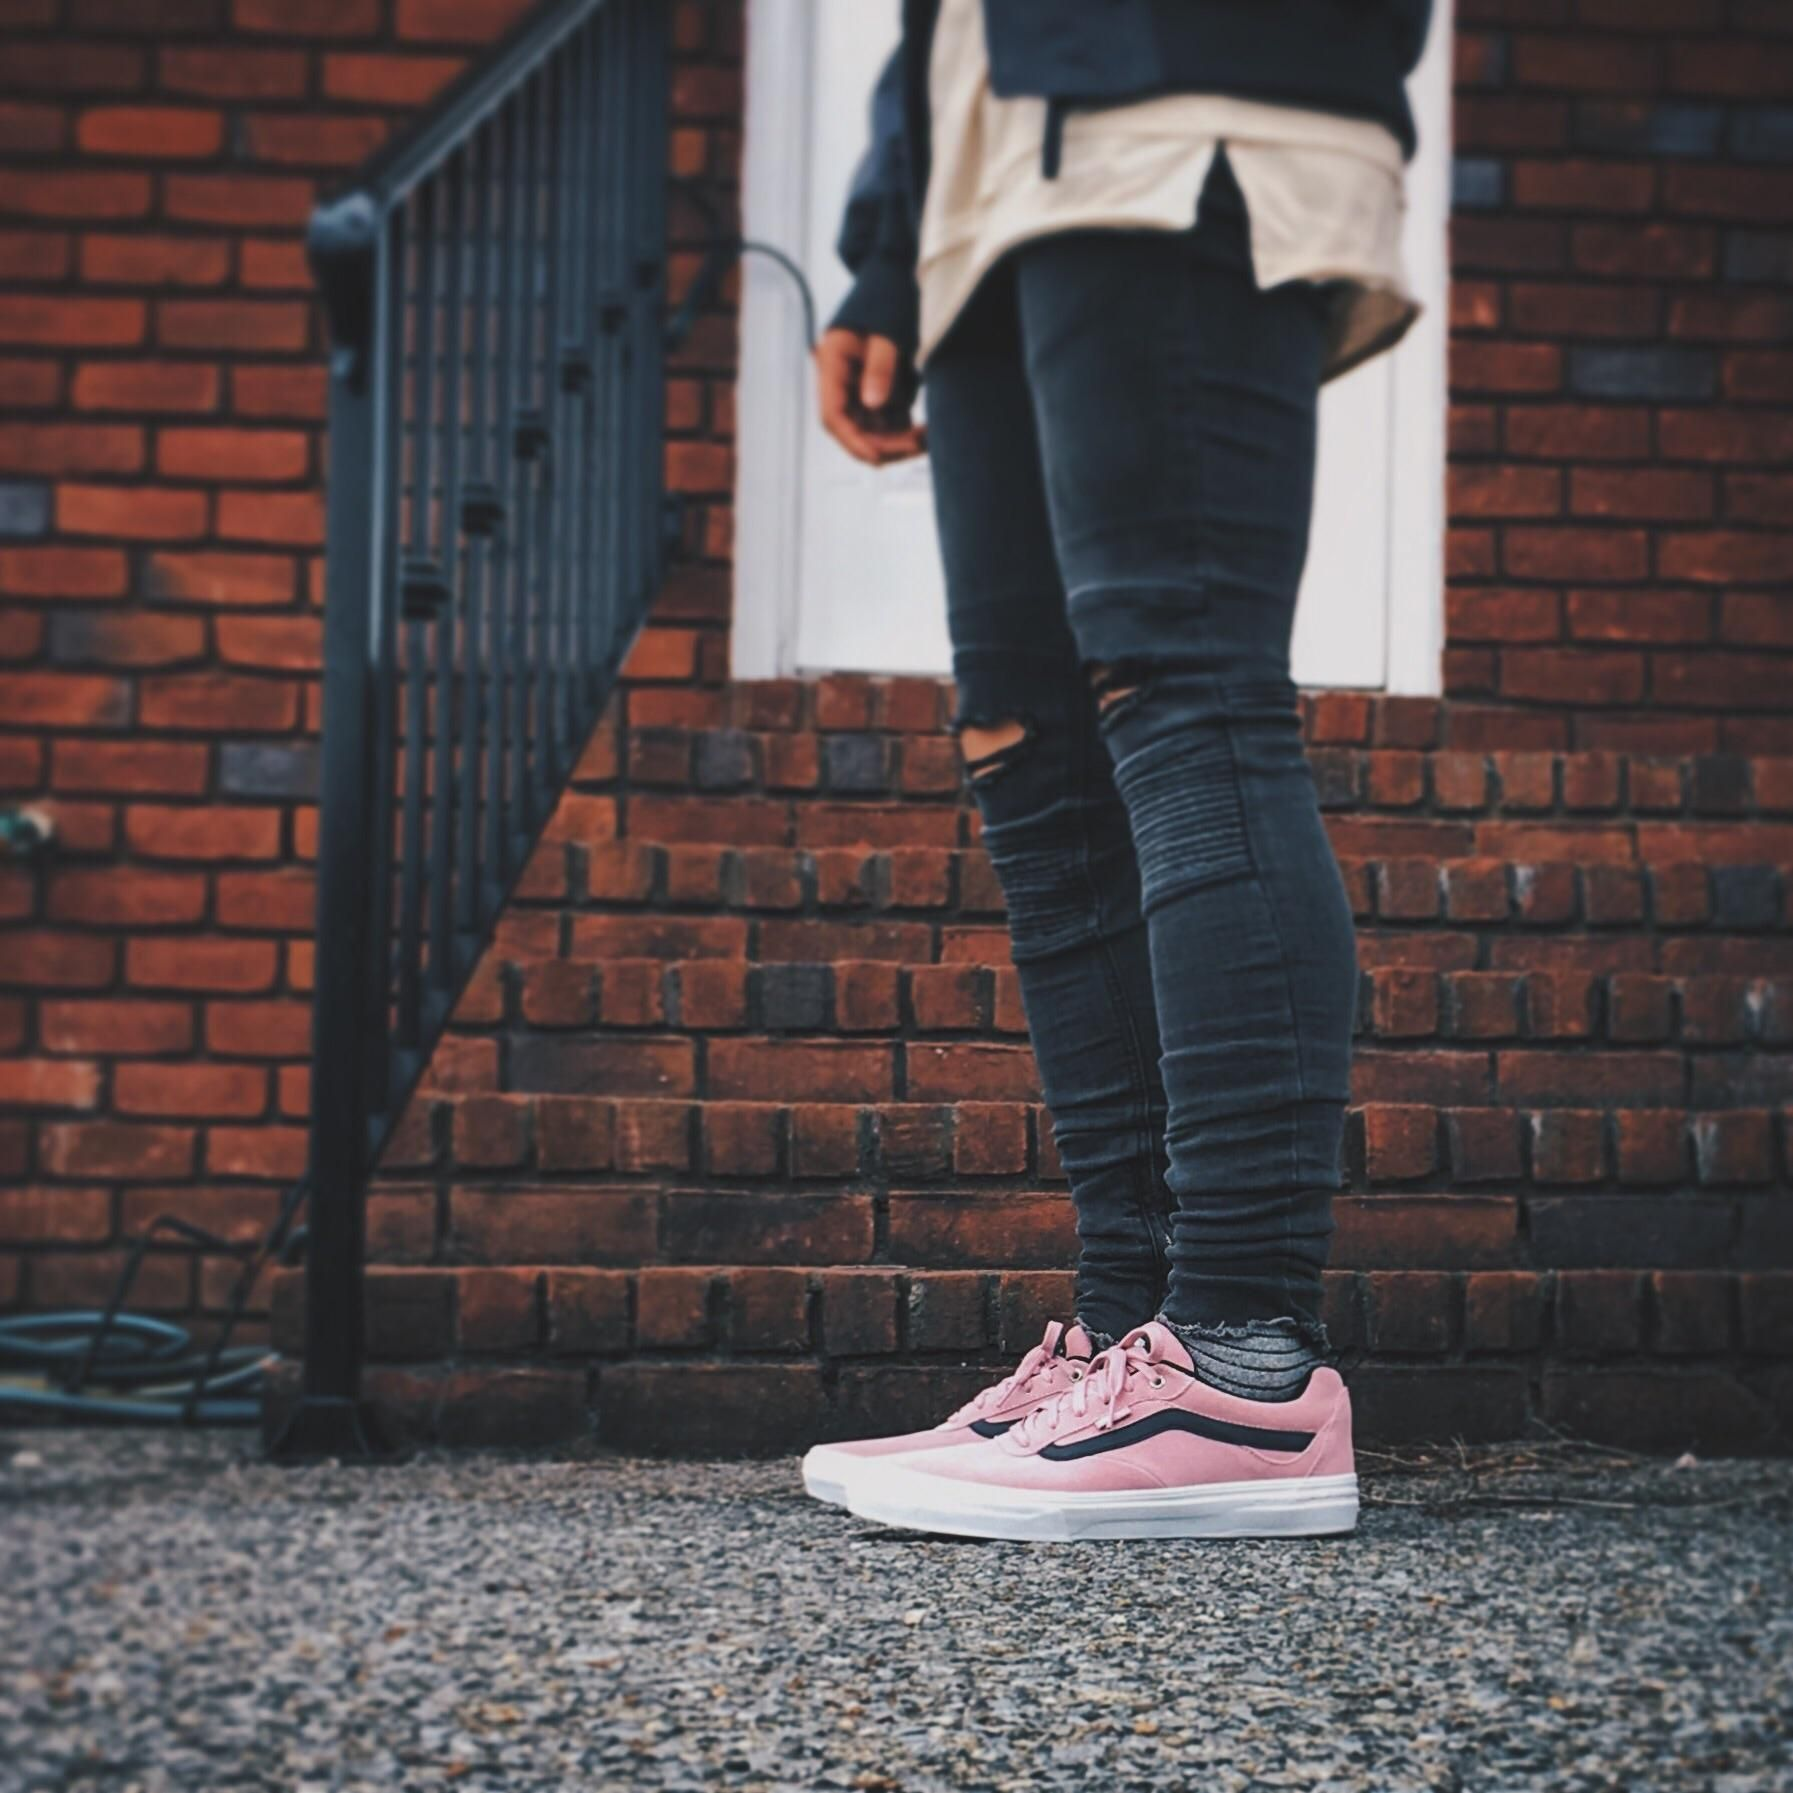 e5ed01cb7a WDYWT  Something different...Vans Kyle Walker Pros in pink.